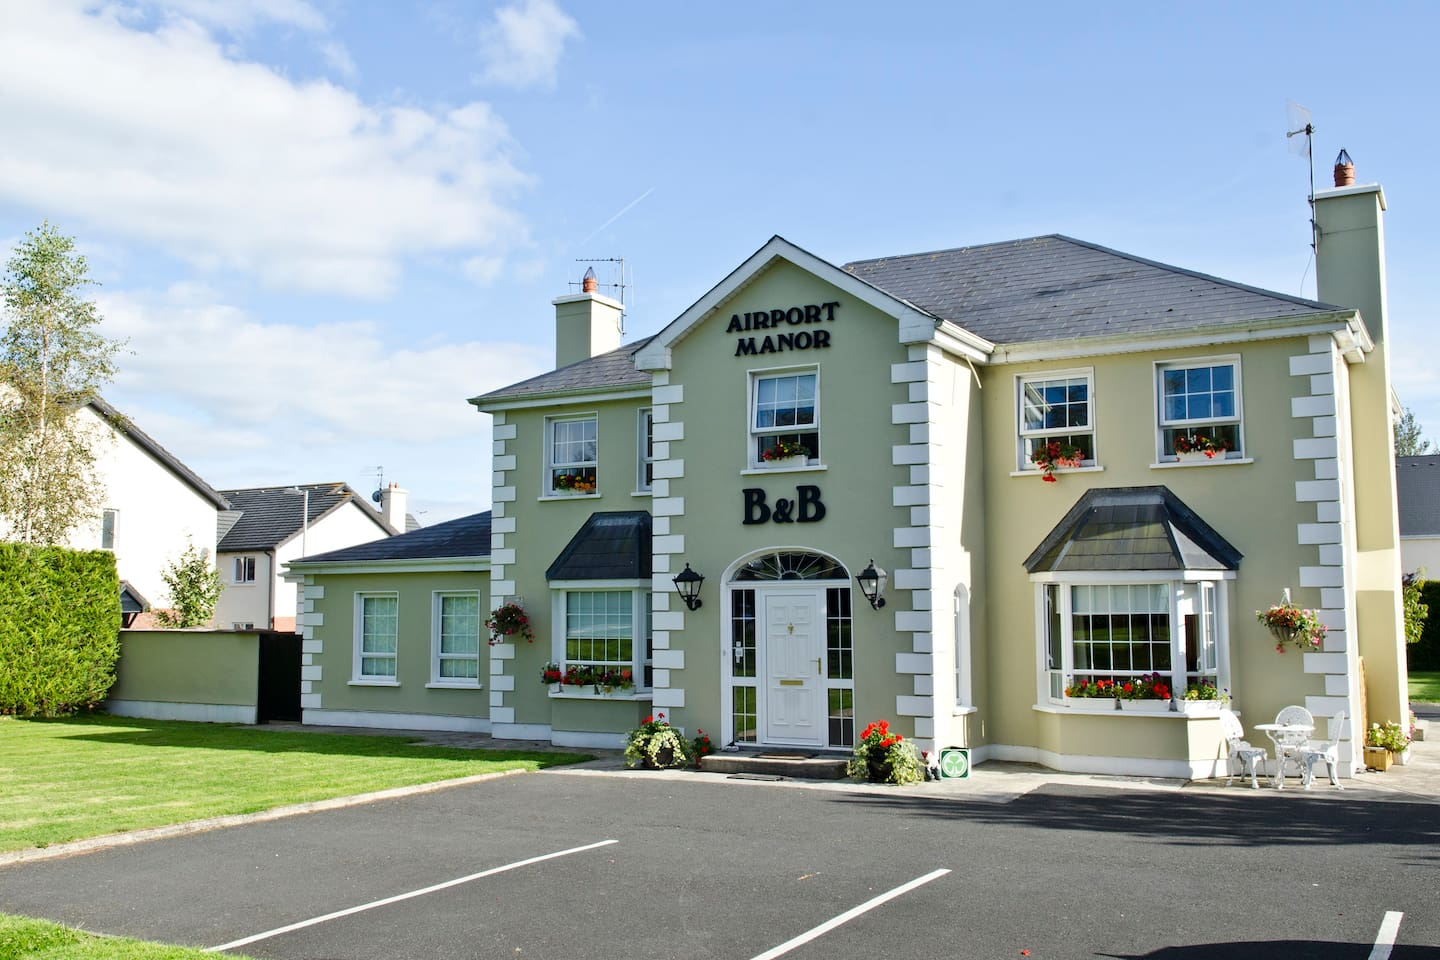 Private Car Park at front of House